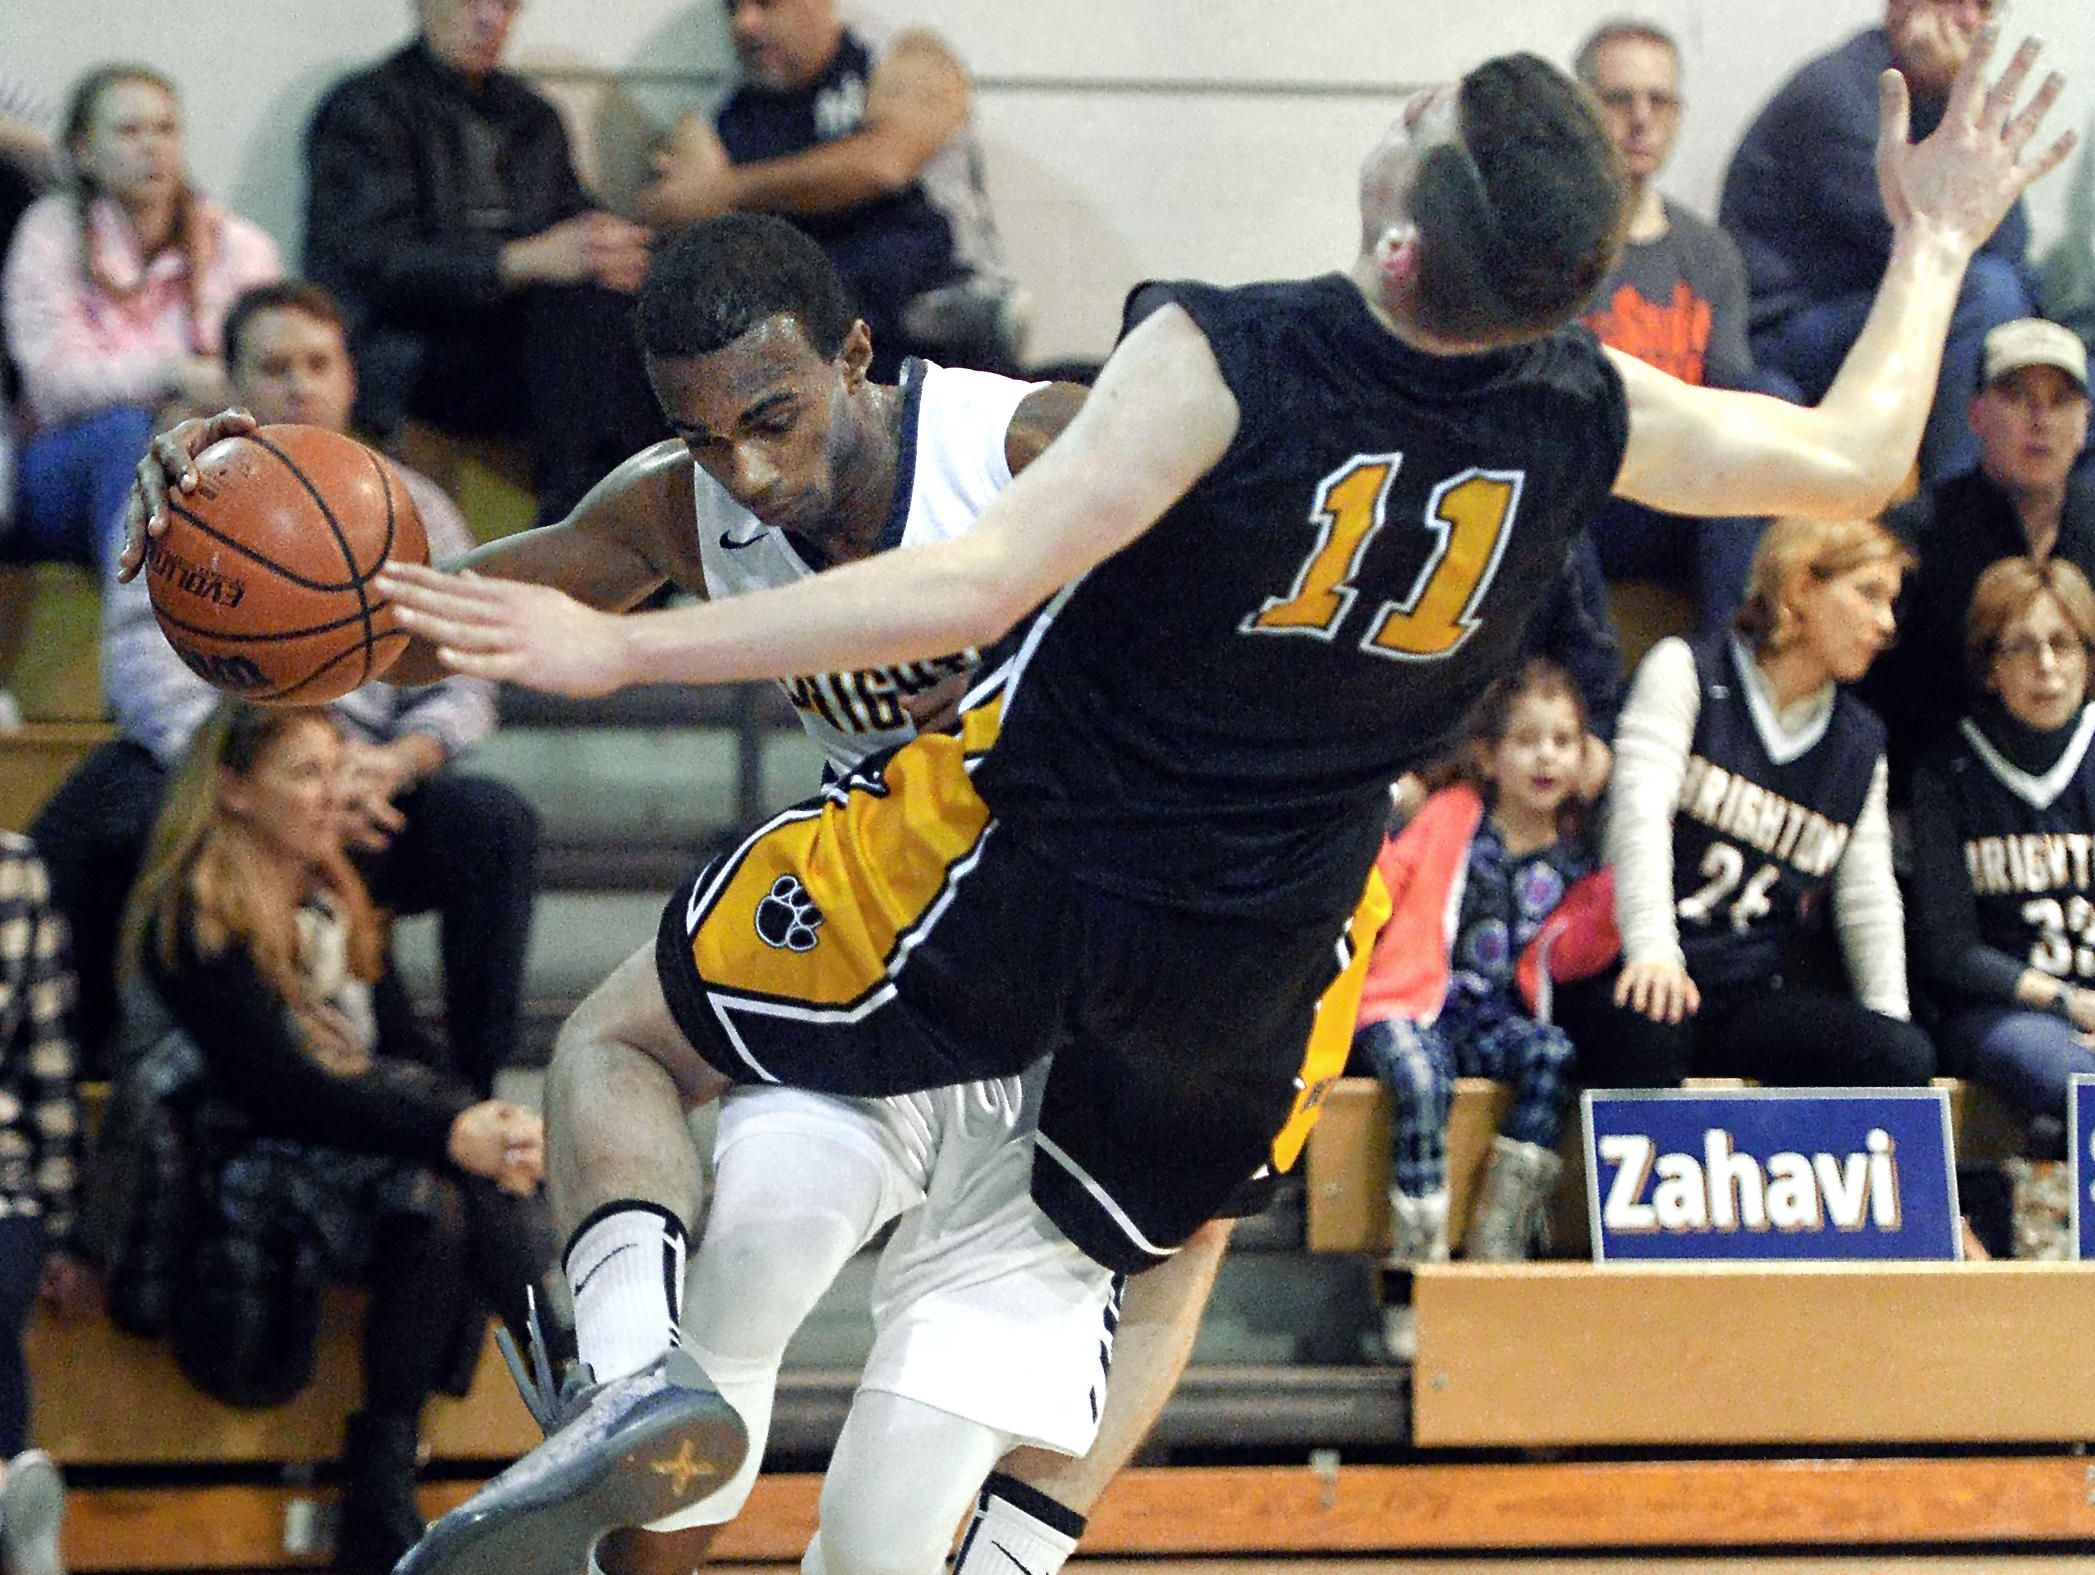 Honeoye Falls-Lima's Josh D'Agostino, right, draws a charge on Brighton's Miles Davis during a game played at Brighton High School on Wednesday, Feb. 3, 2016.